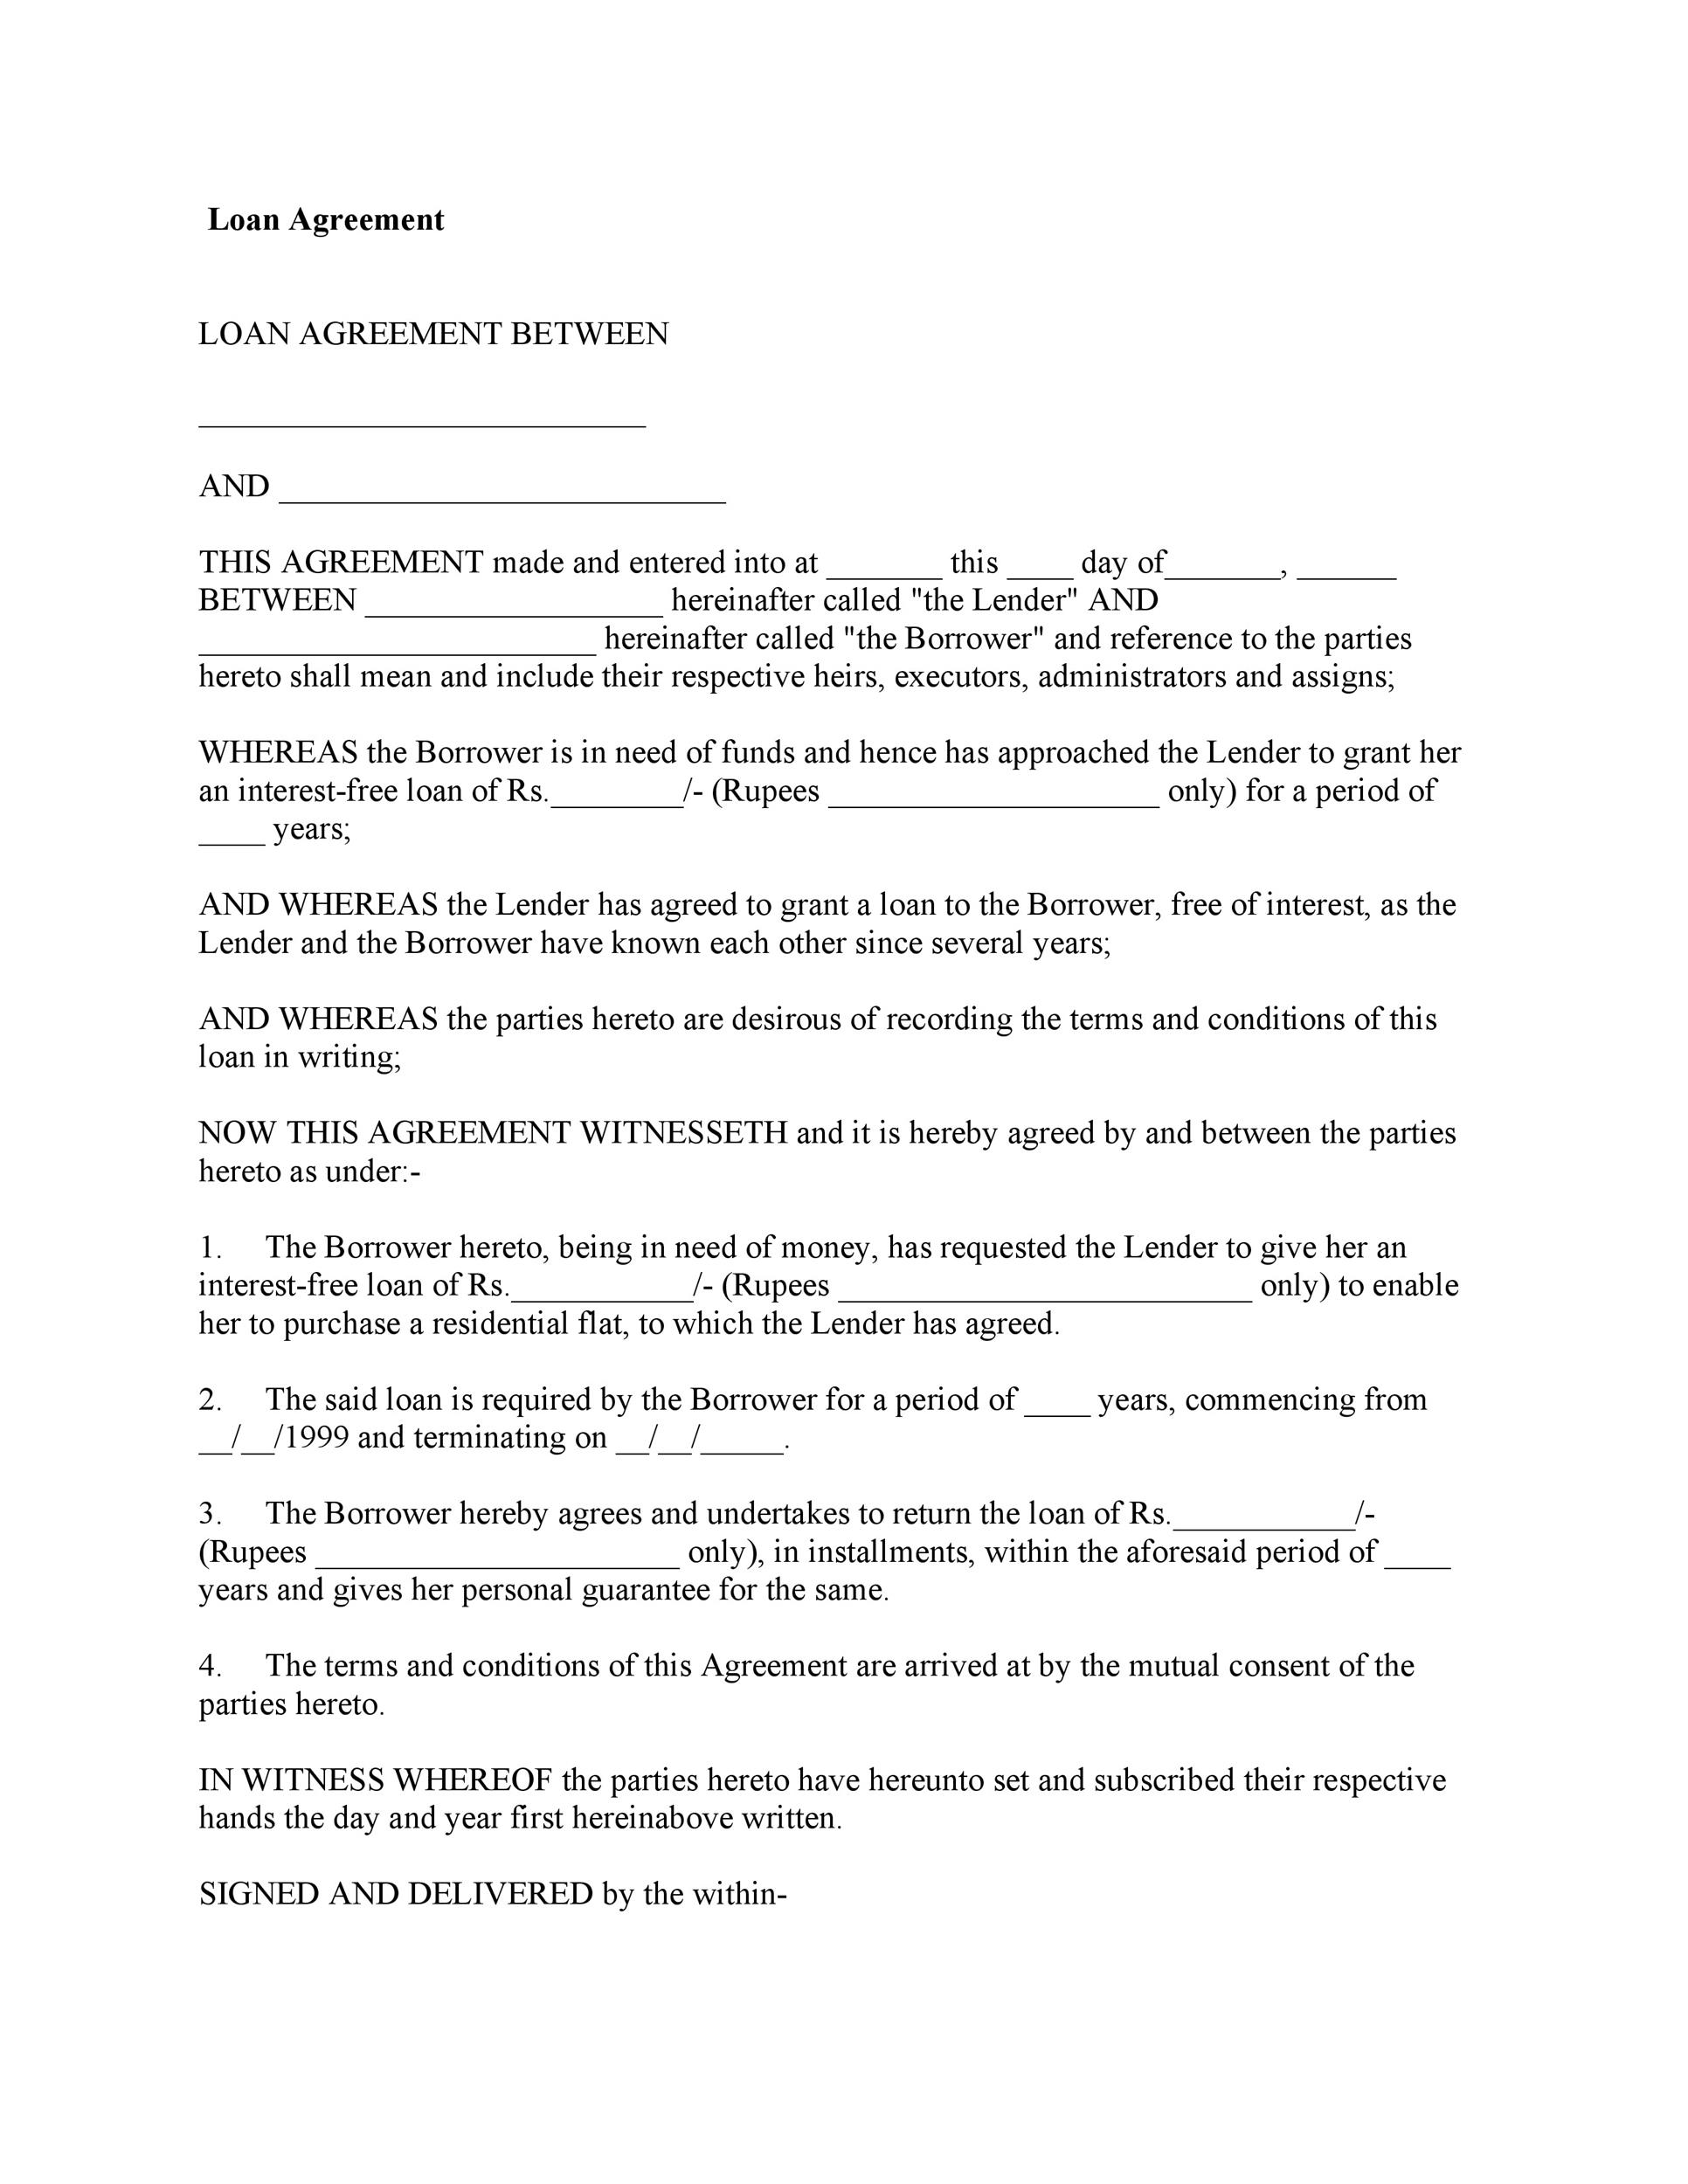 Free loan agreement template 32